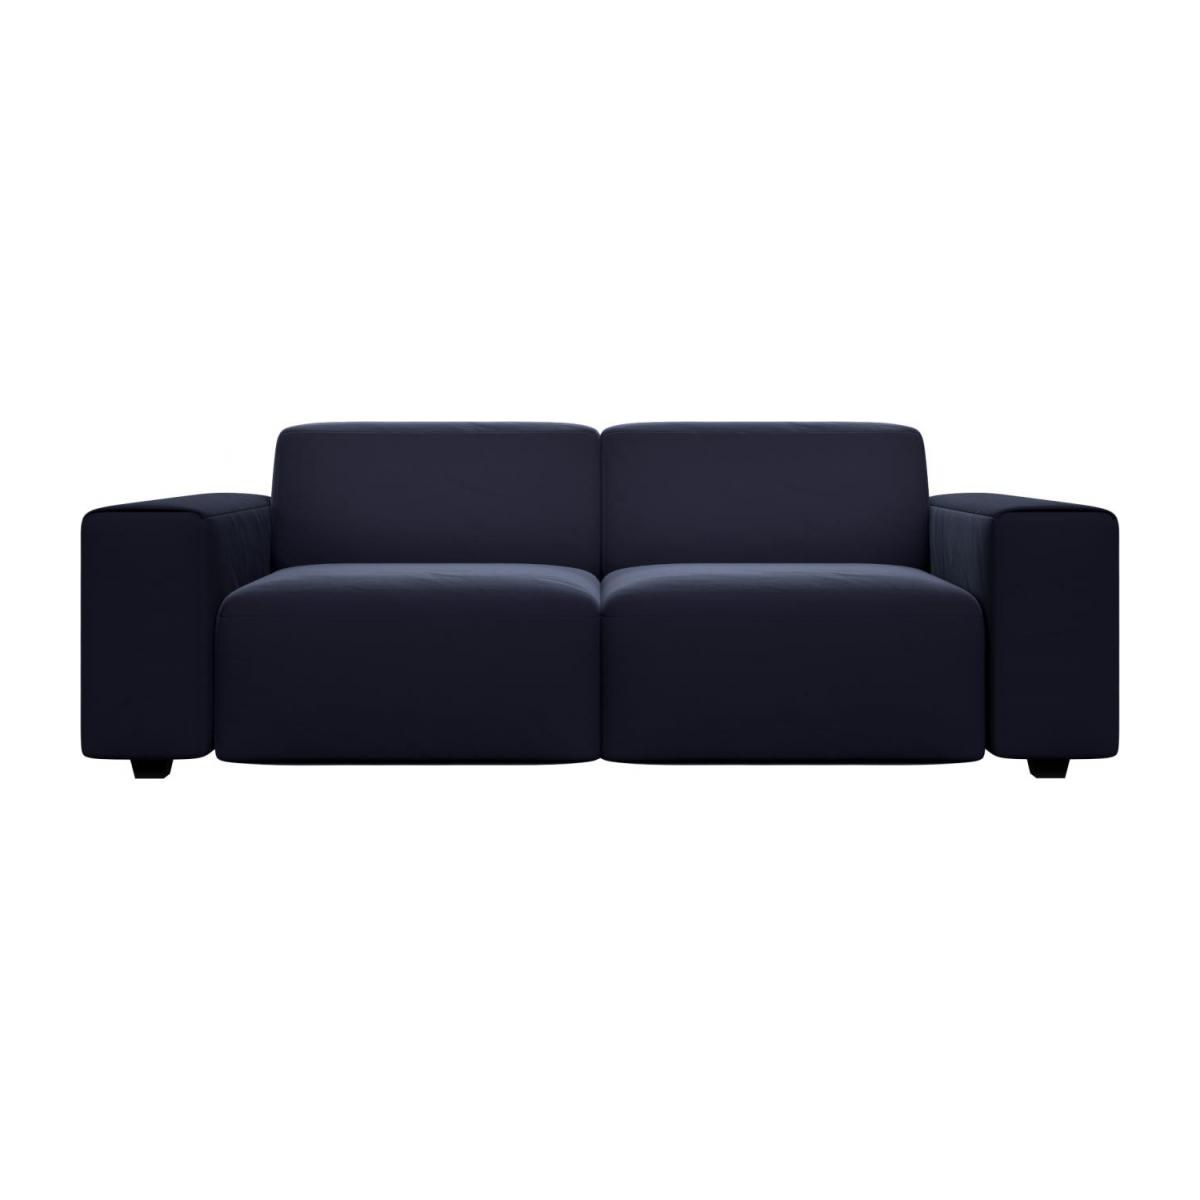 3 seater sofa in Super Velvet fabric, dark blue n°2